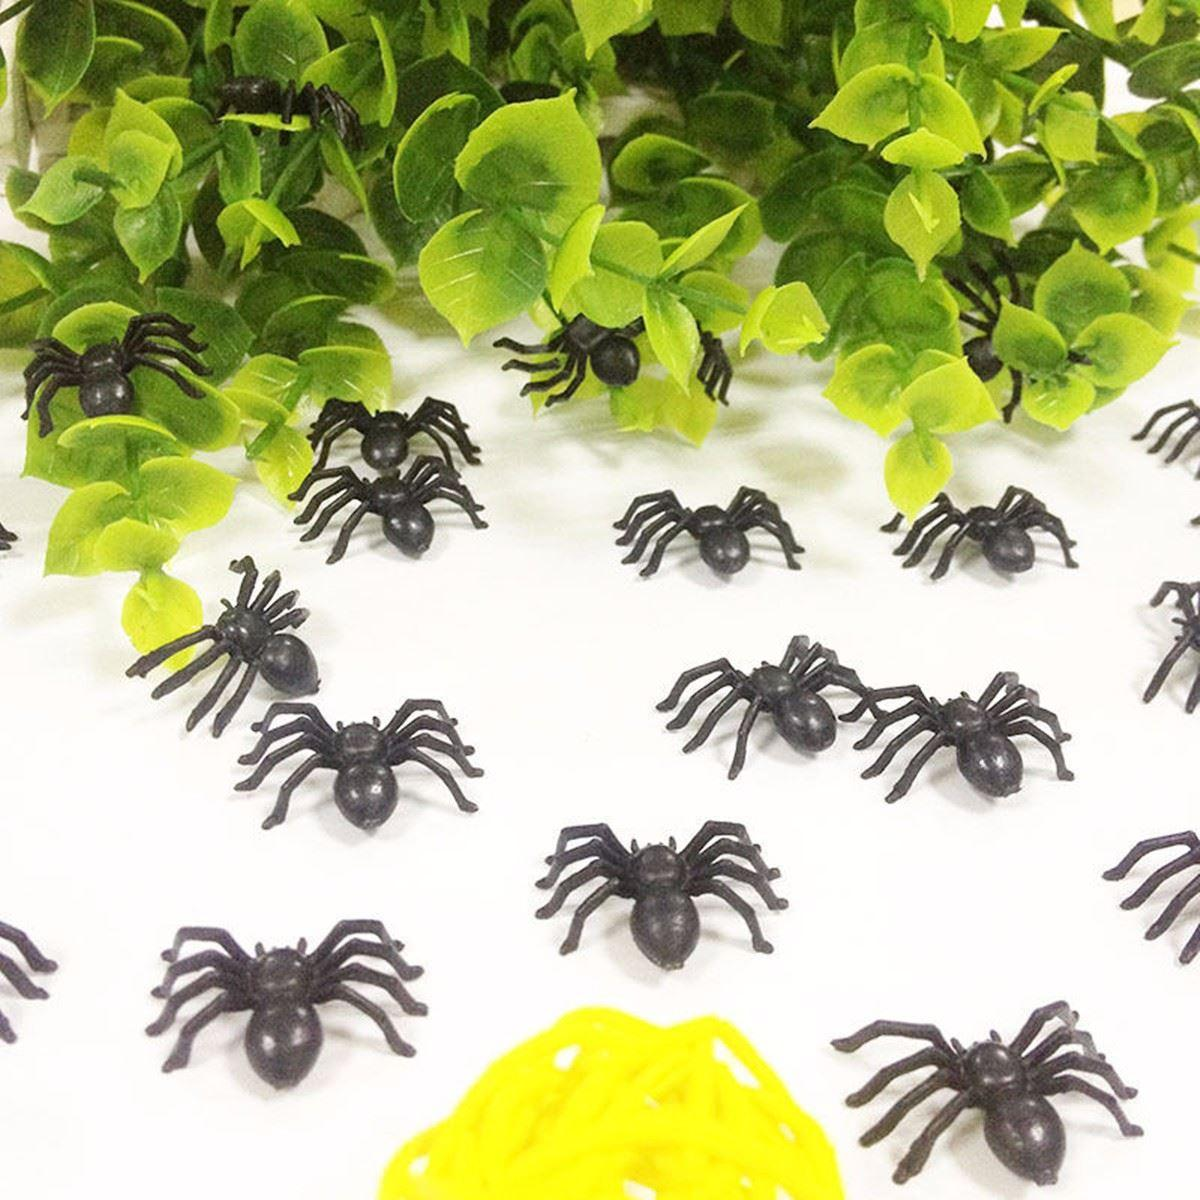 Best /Bag Simulation Small Black Fake Spider Halloween Party ...